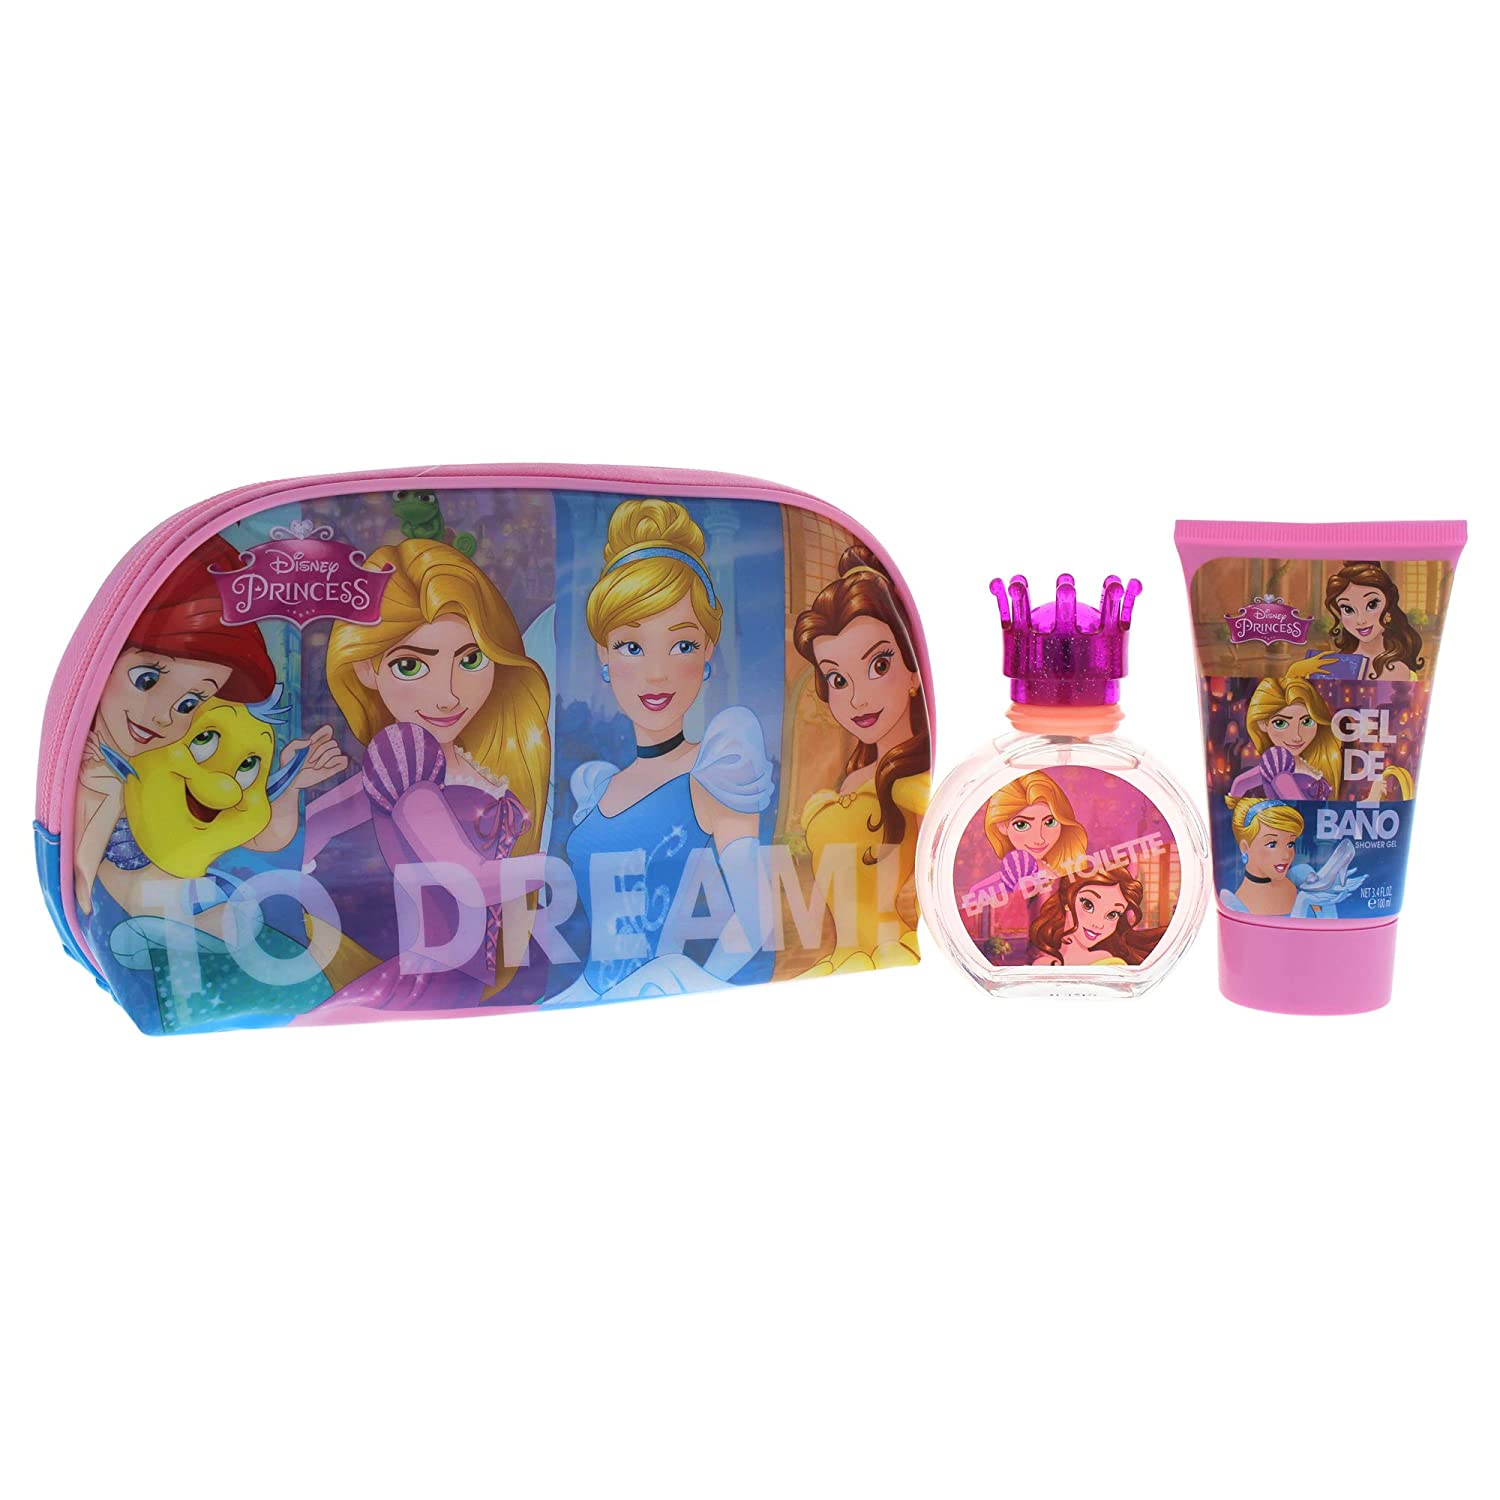 Disney princess for kids - 3 piece gift set 1.7oz edt spray, 3.4oz shower gel, toiletry bag 6022